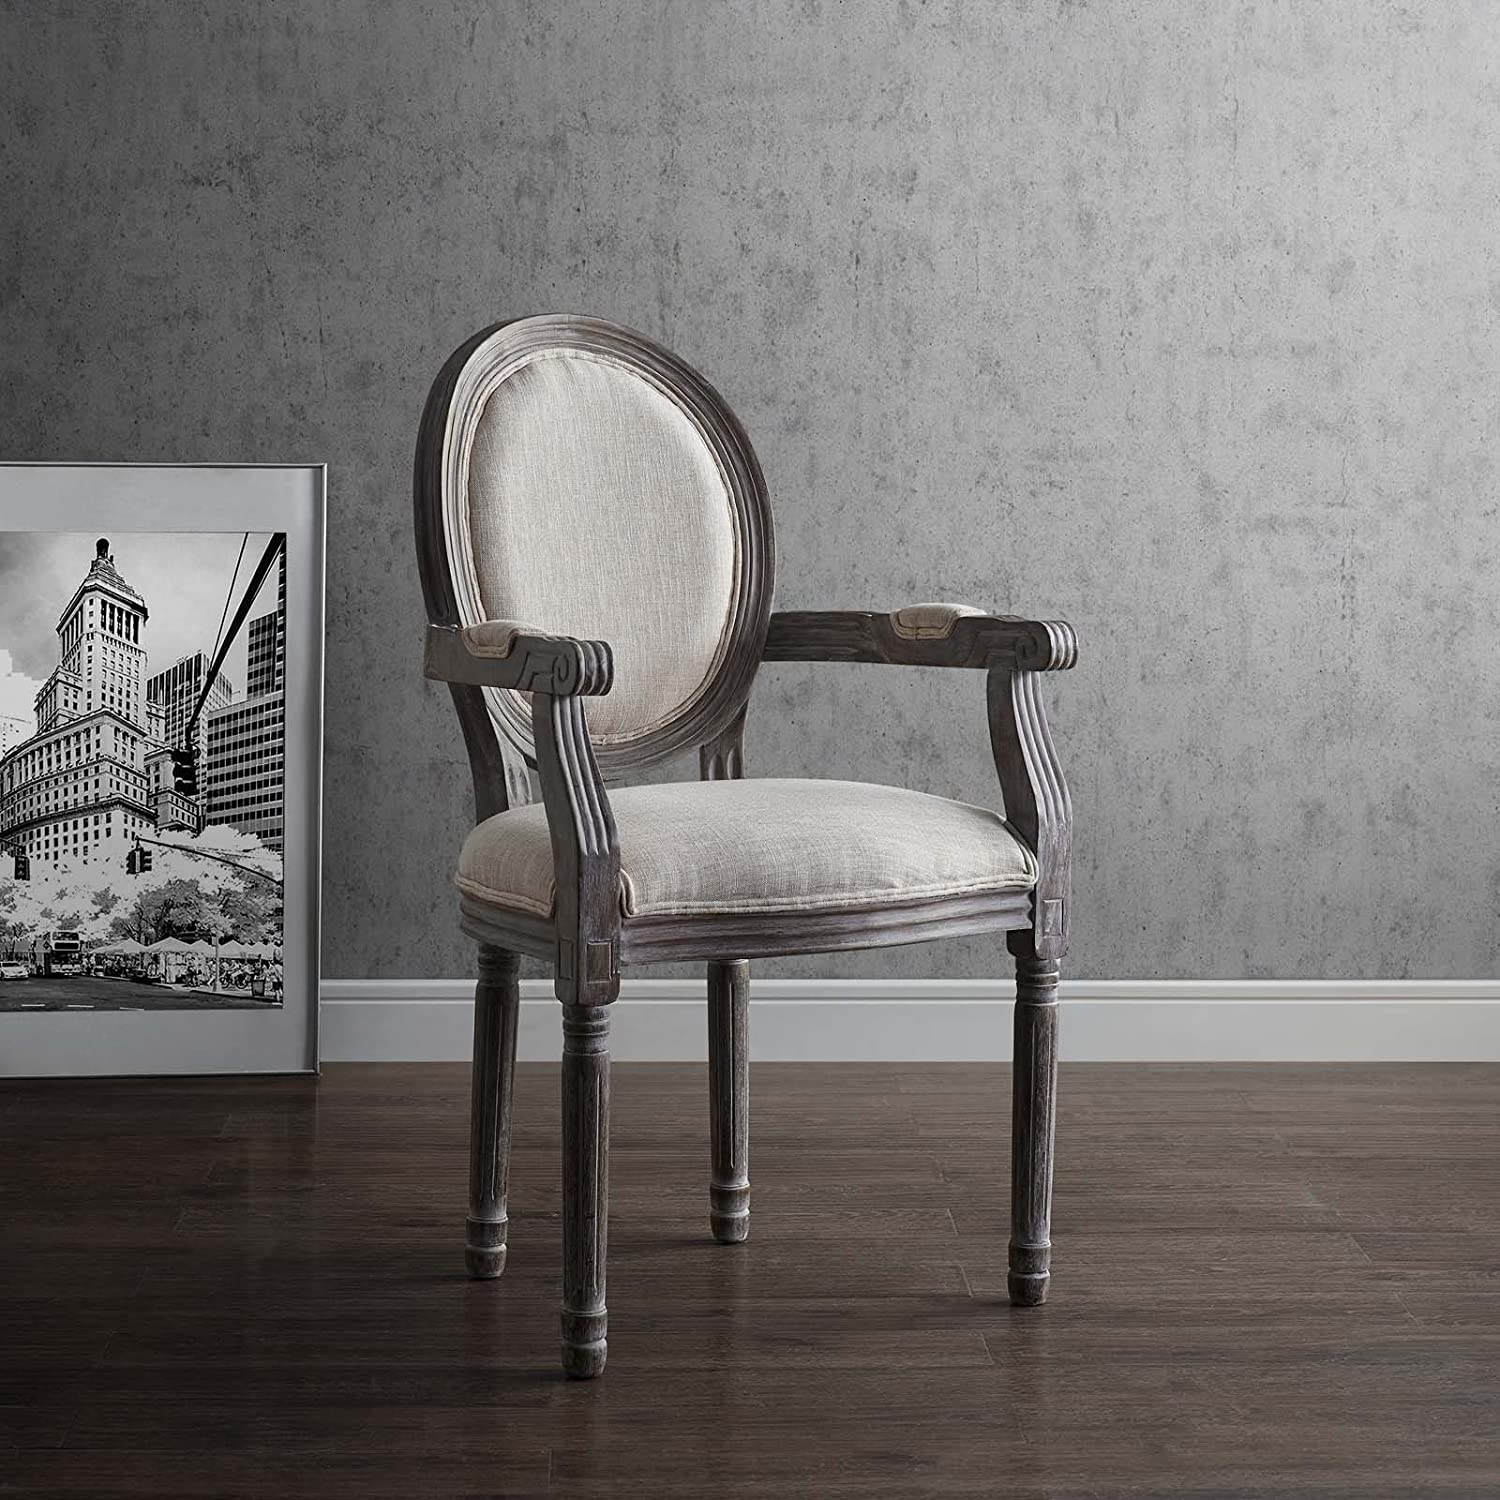 Stupendous Modway Emanate French Vintage Upholstered Fabric Kitchen And Dining Room Arm Chair In Beige Fully Assembled Gamerscity Chair Design For Home Gamerscityorg